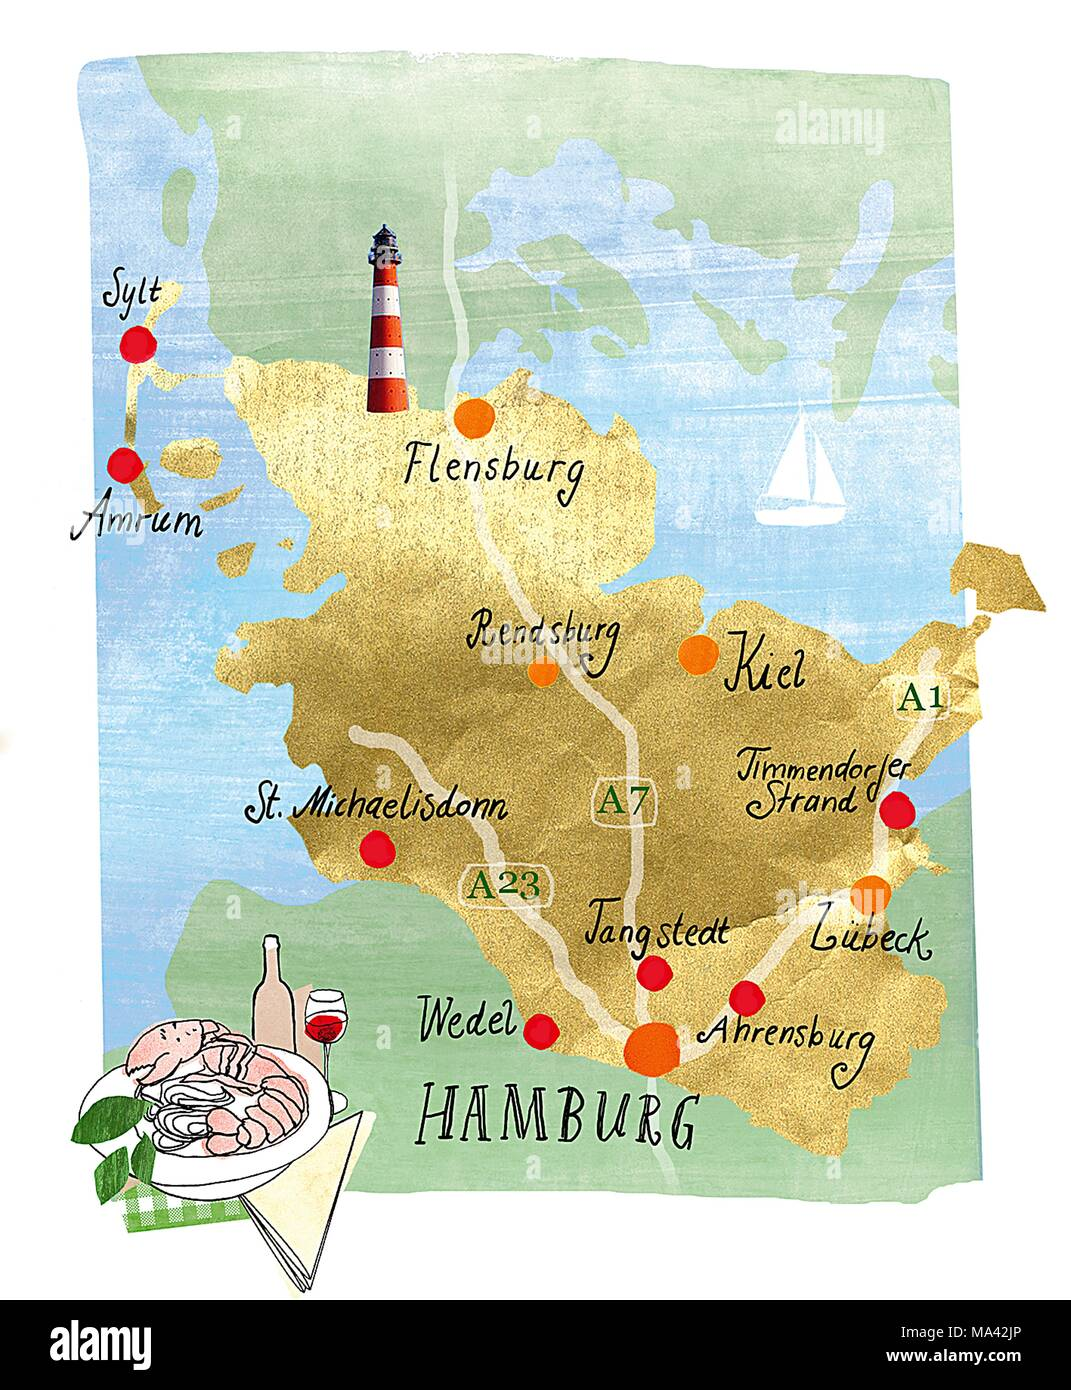 A handdrawn map of Hamburg and the local region in Northern Germany